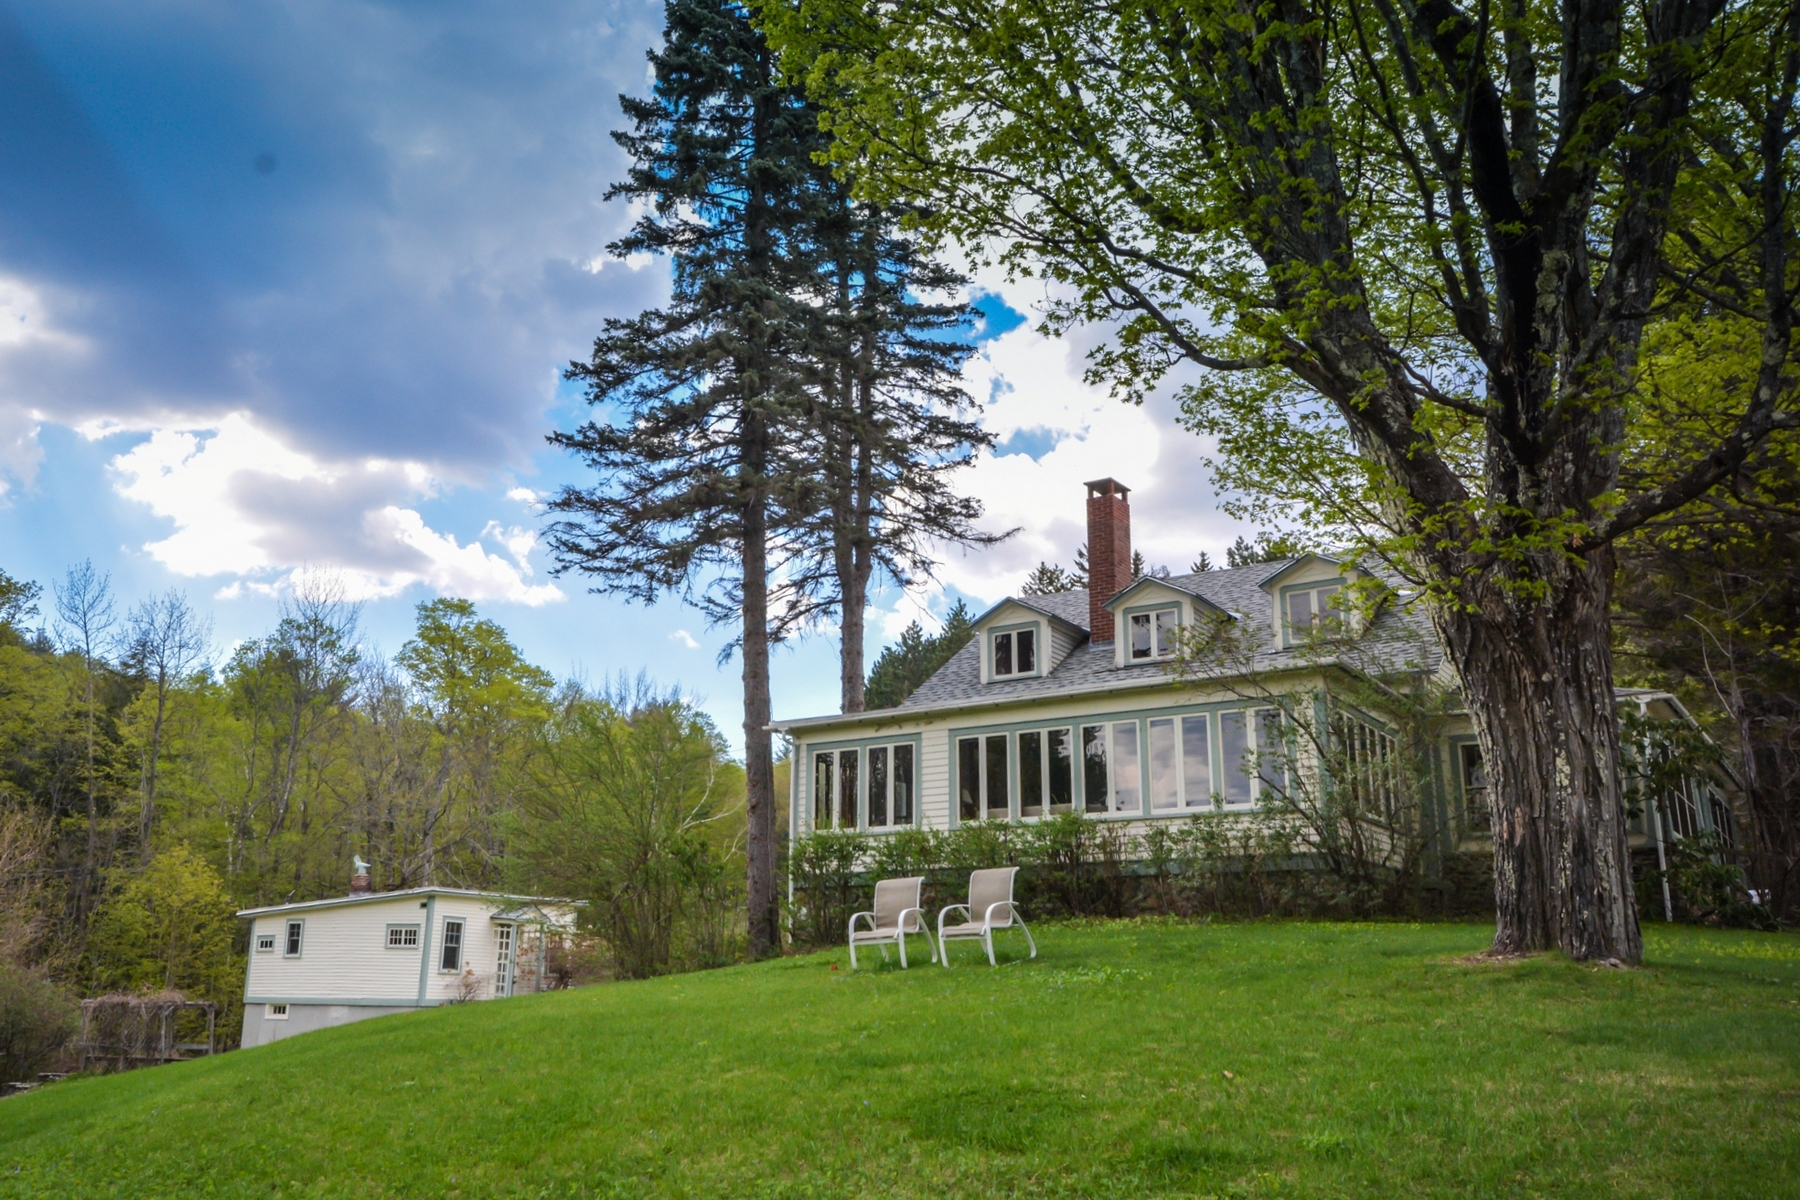 Single Family Home for Sale at Vintage Cape on 139+ Acres 153 Lorchs Hill Rd Wardsboro, Vermont, 05360 United States